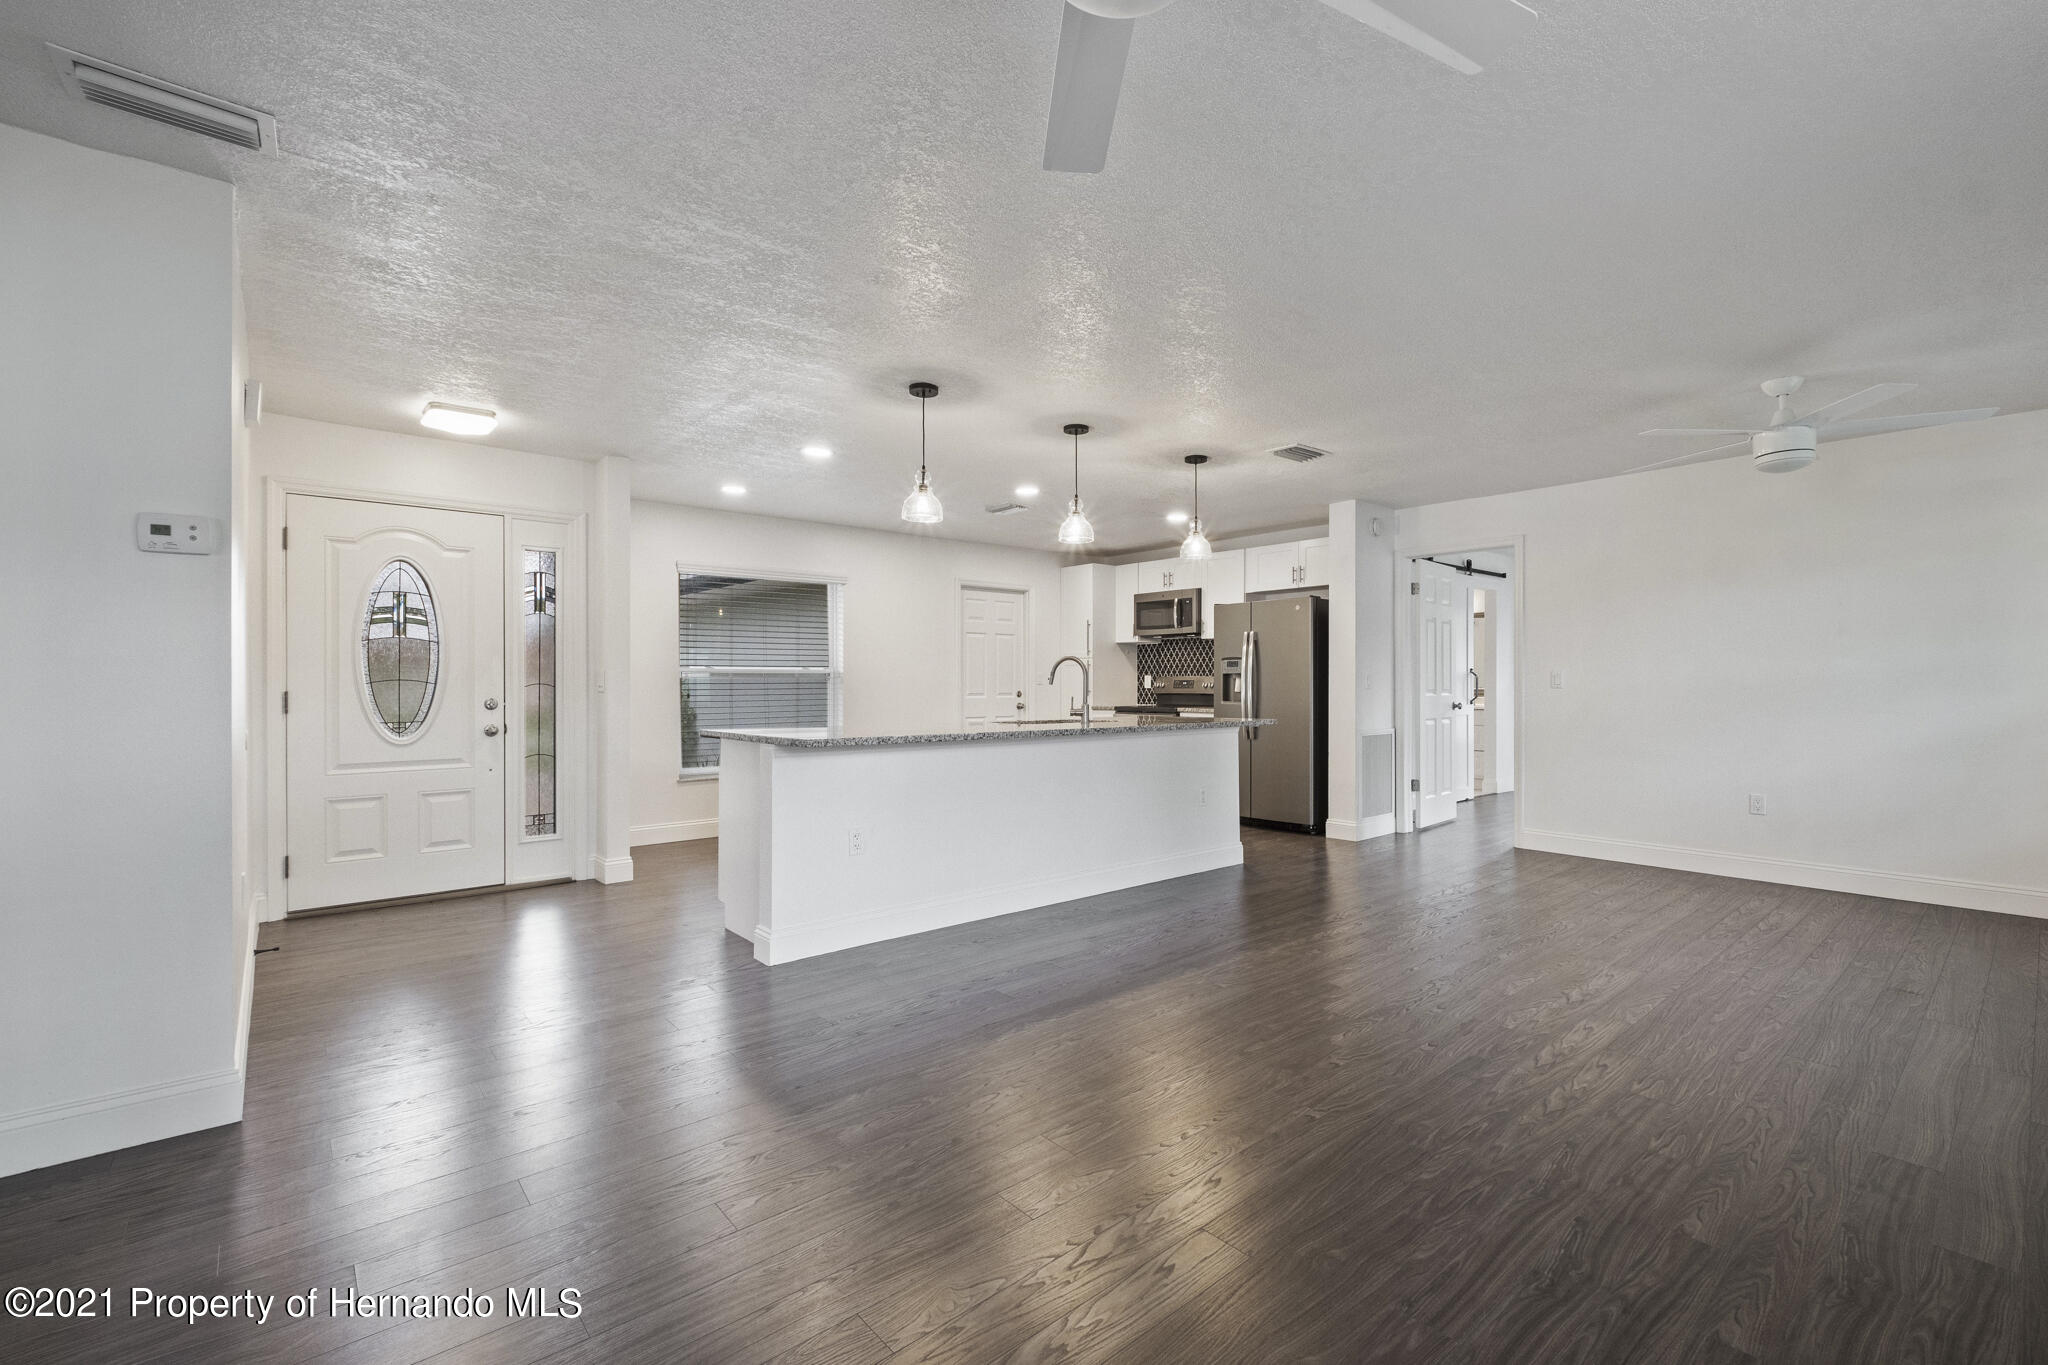 Image 11 of 60 For 4212 Dristol Avenue